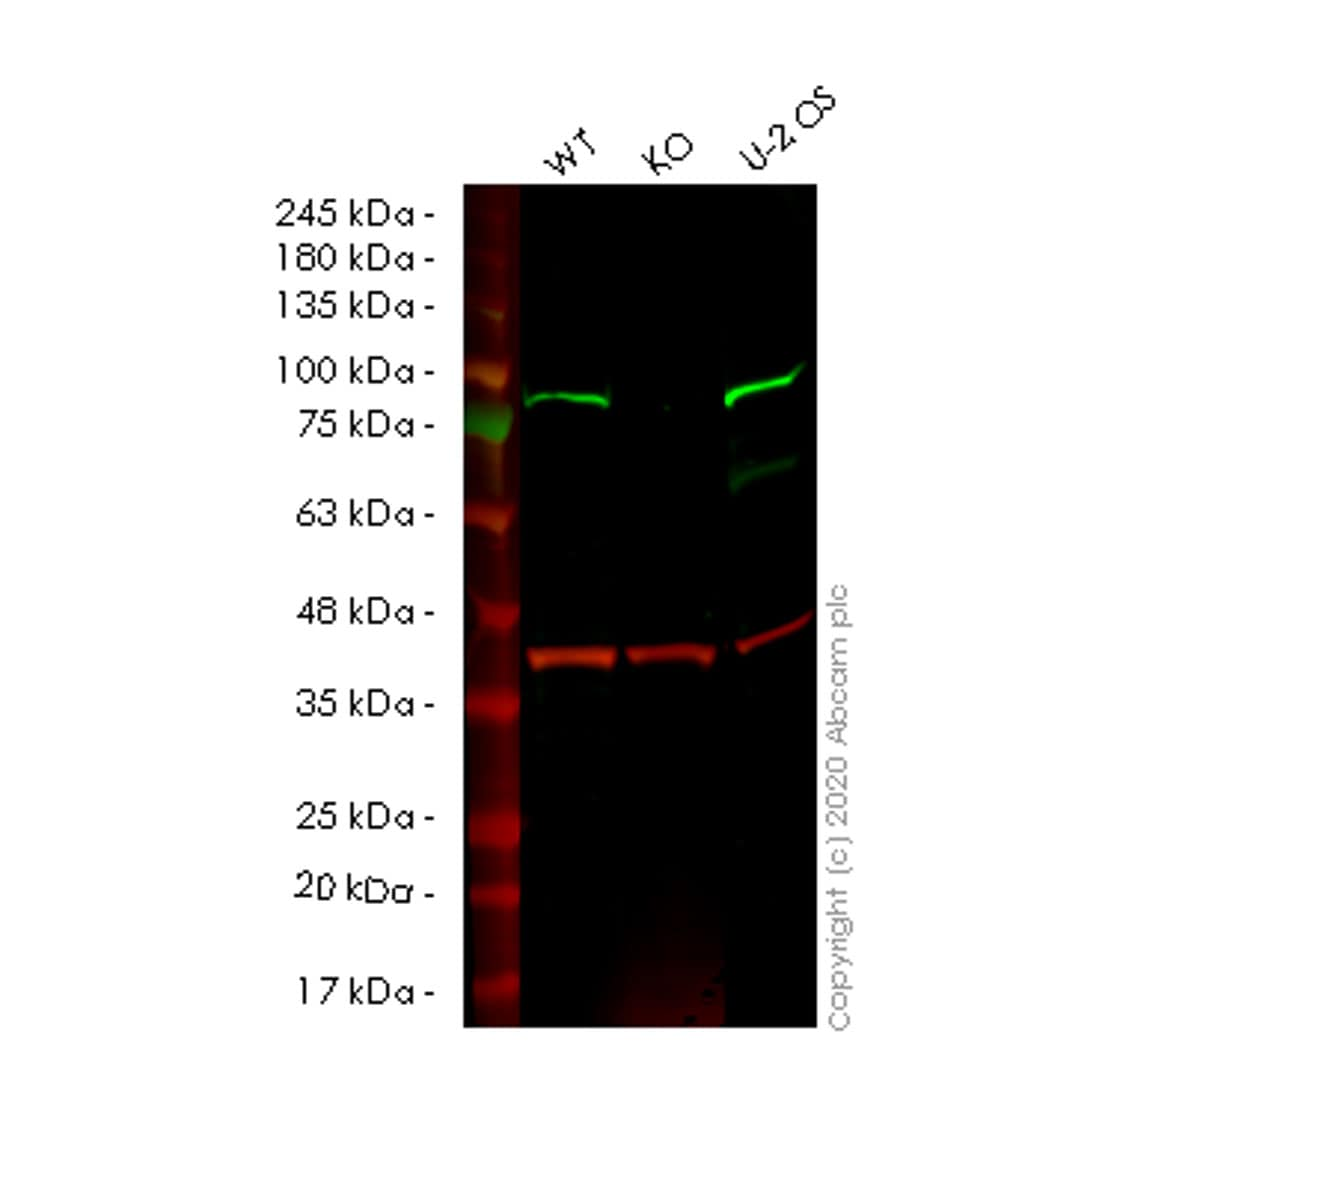 Western blot - Anti-SMURF 2 antibody [EP629Y3] - BSA and Azide free (ab239855)